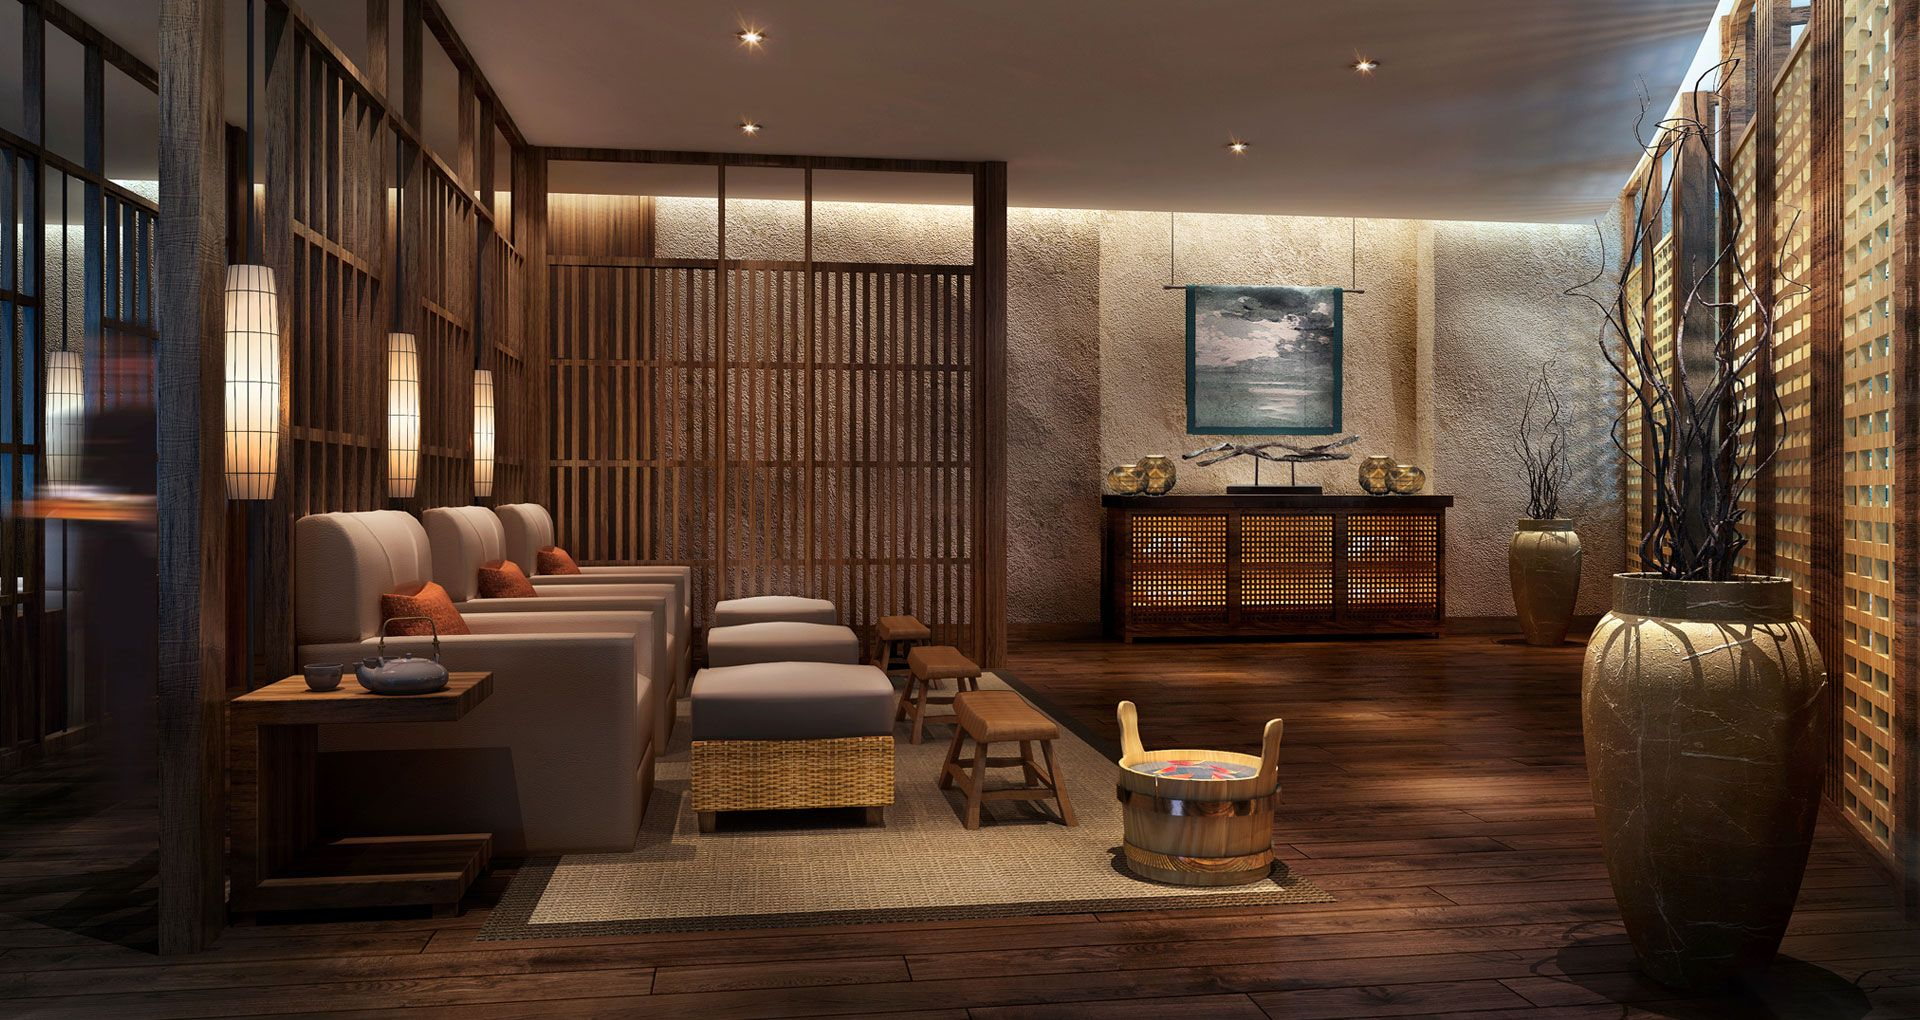 Spa interior design modern house for Spa interior designs